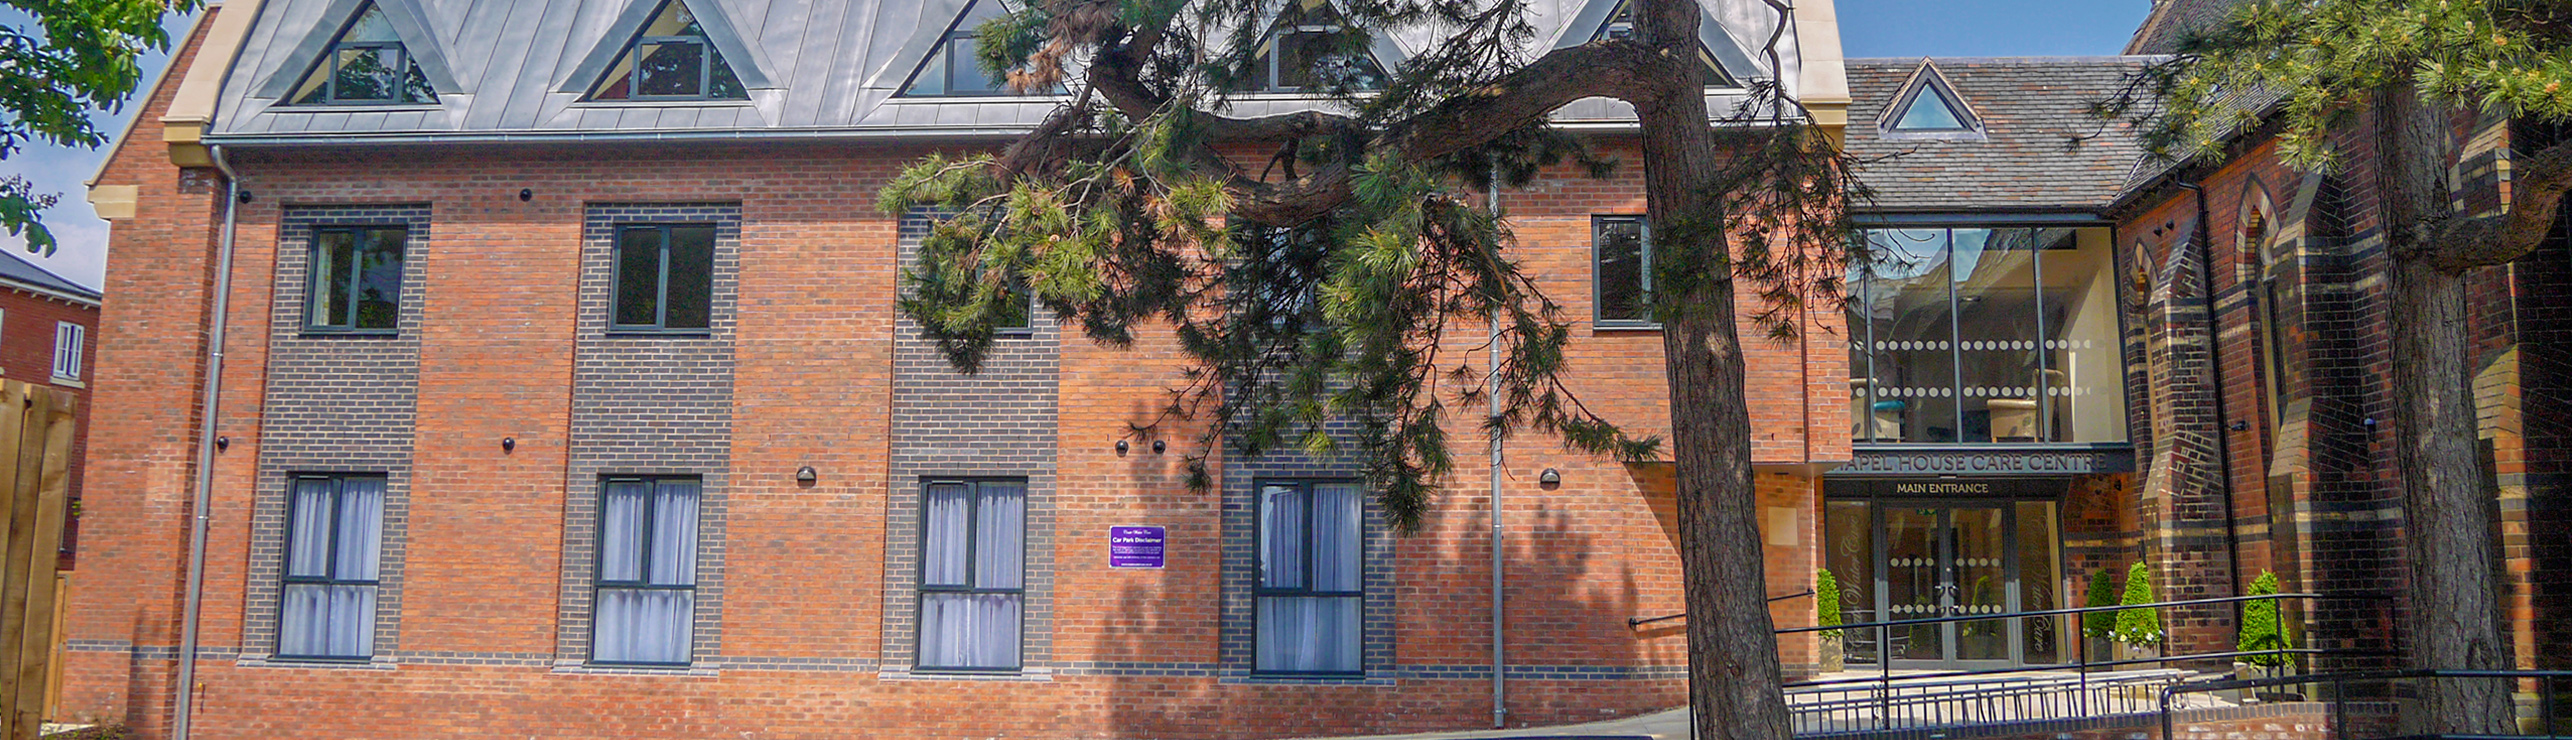 Chapel House Care Home, Gloucester. Coate Water Care